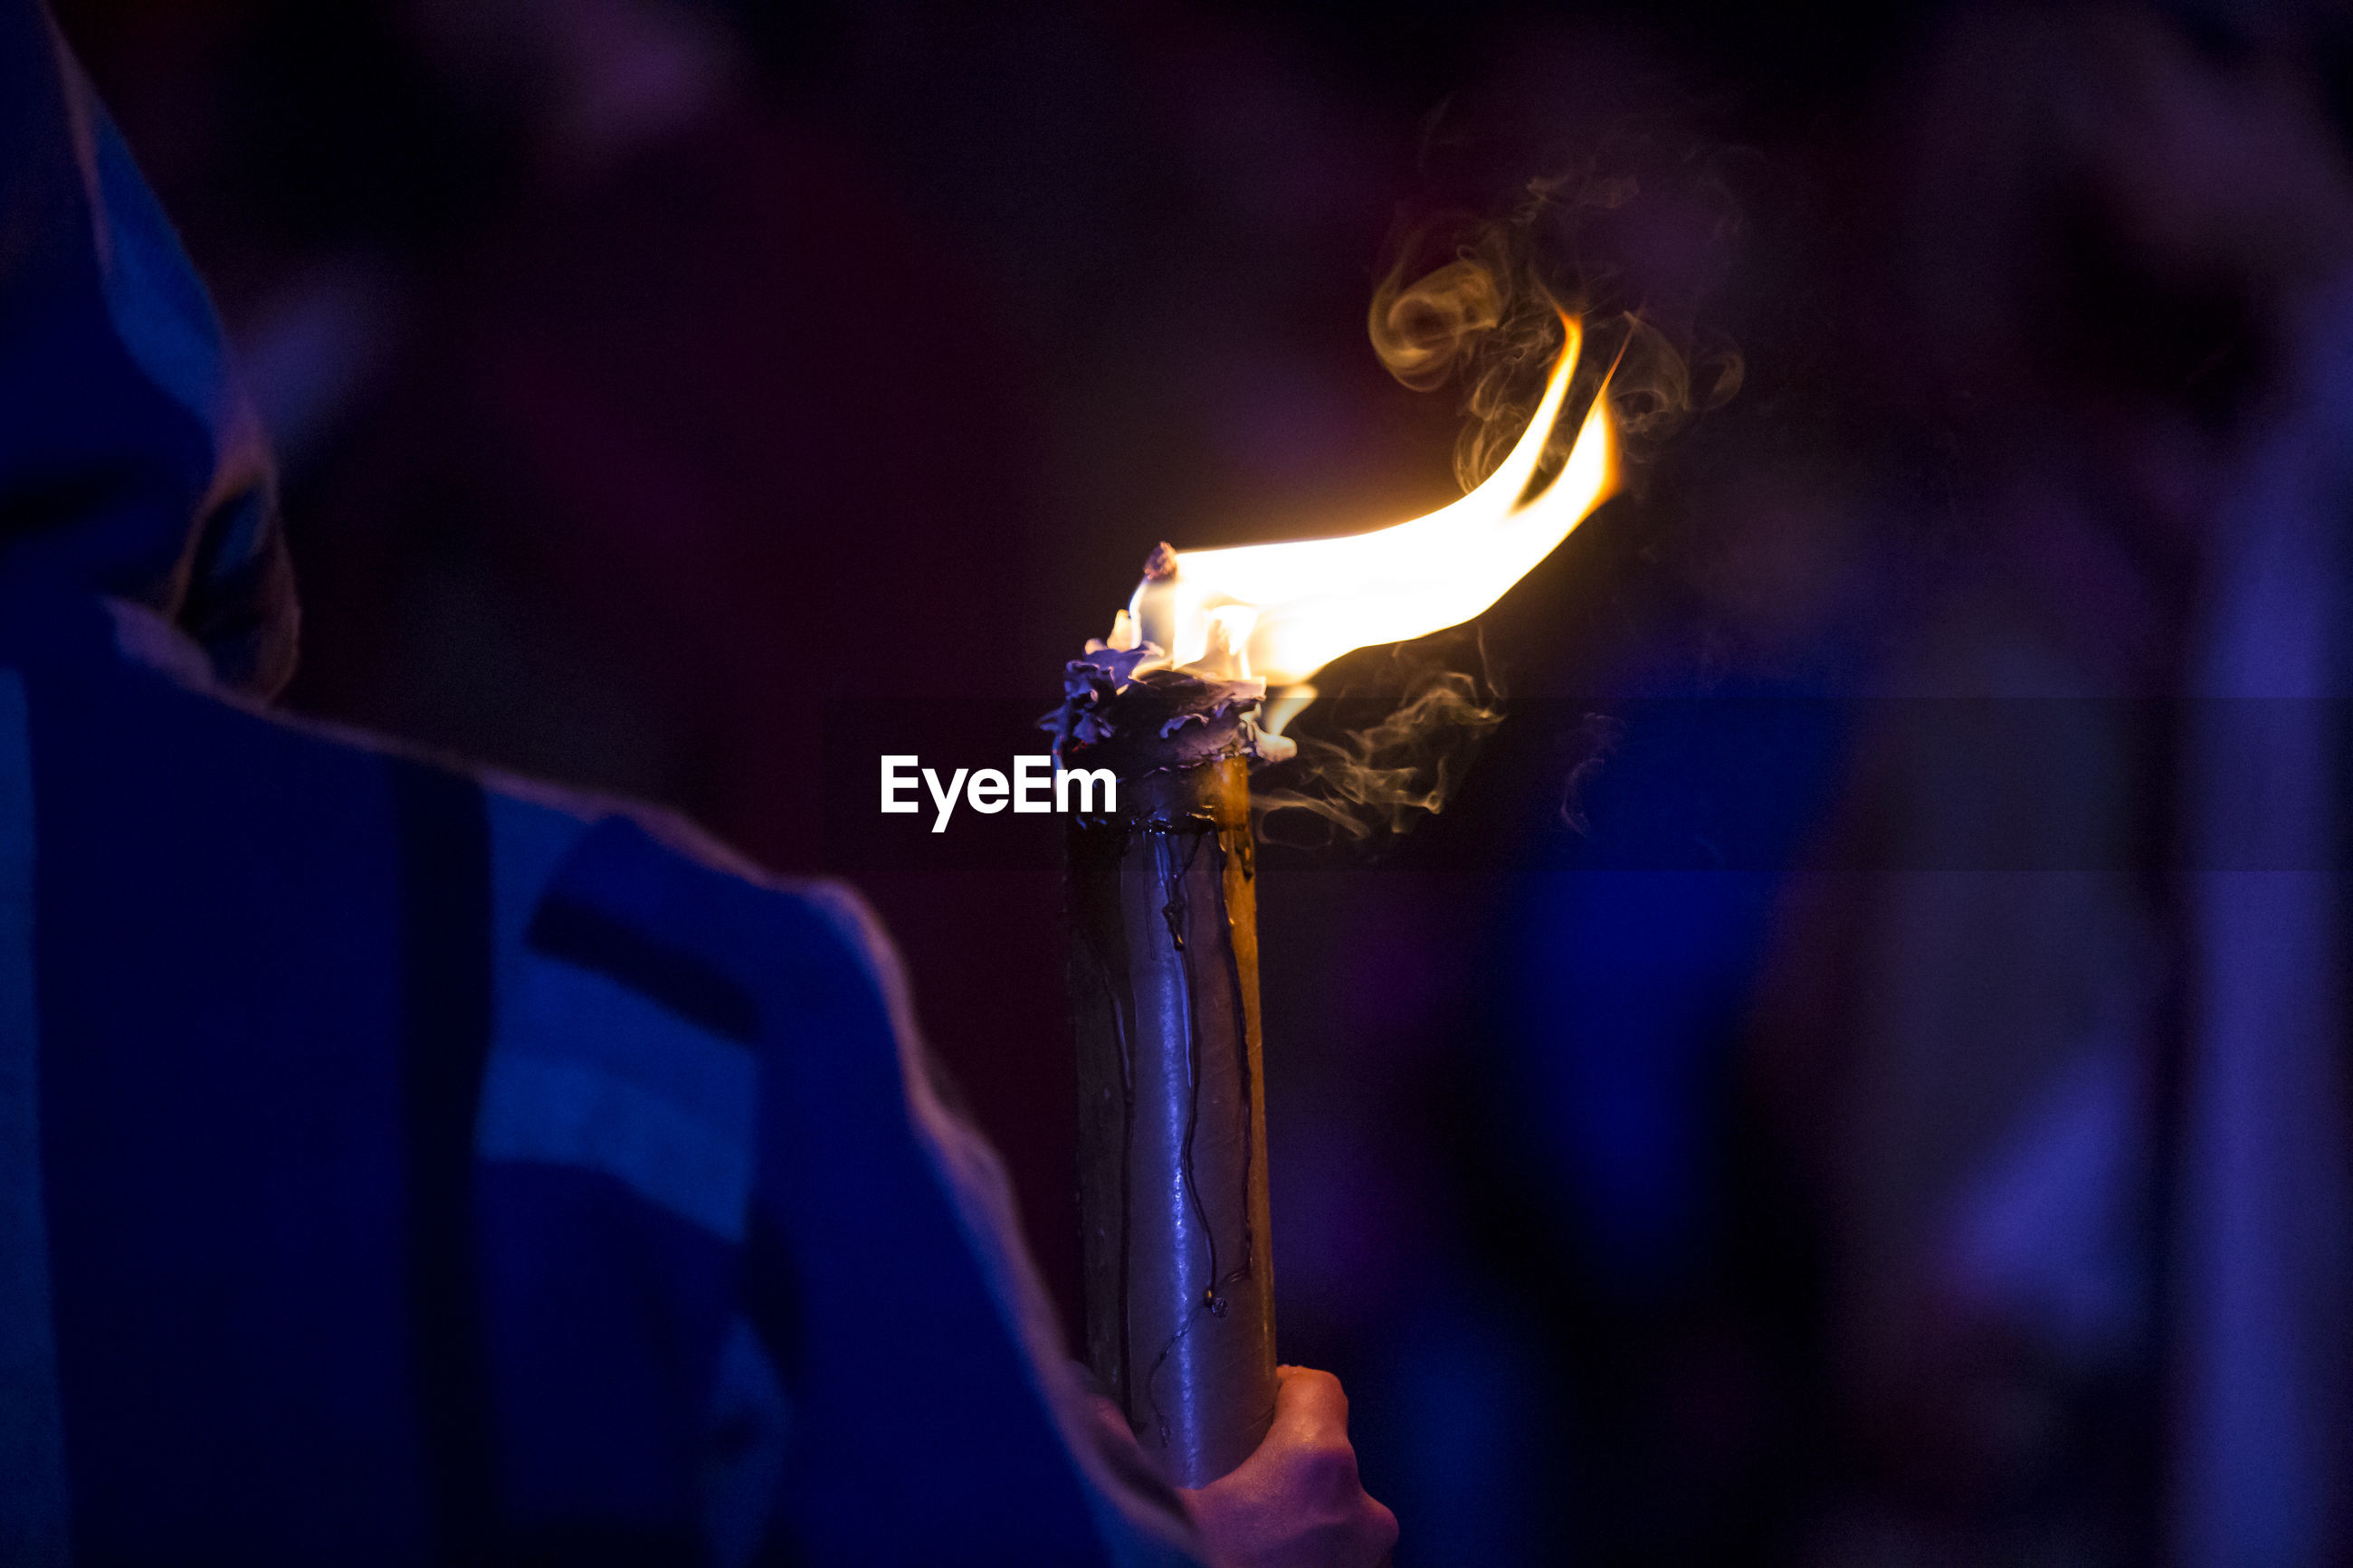 Cropped image of person holding flaming torch